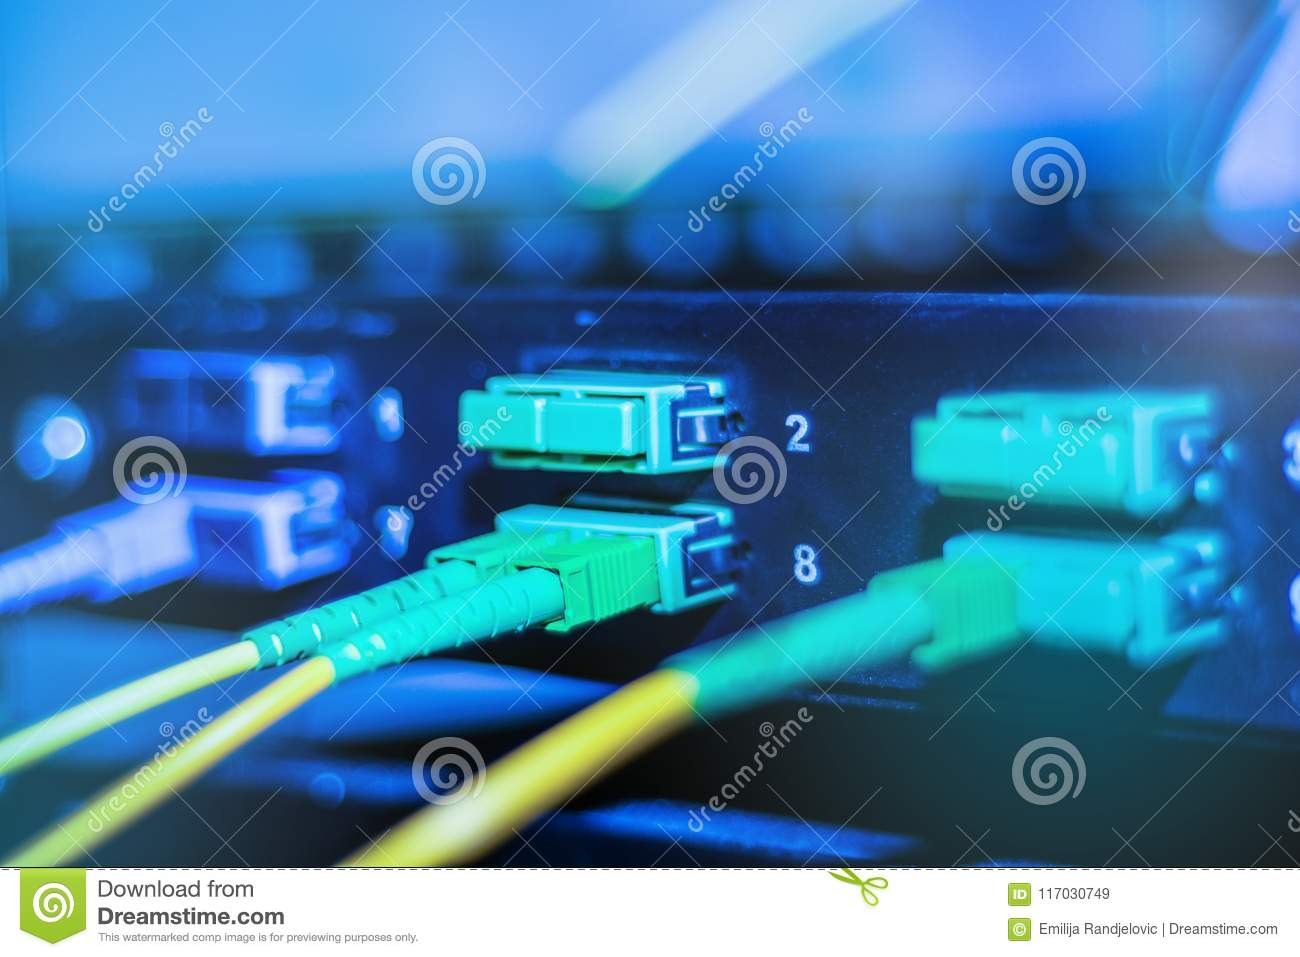 Optical cable in internet network devices. Green and yellow optical fiber cable in switch